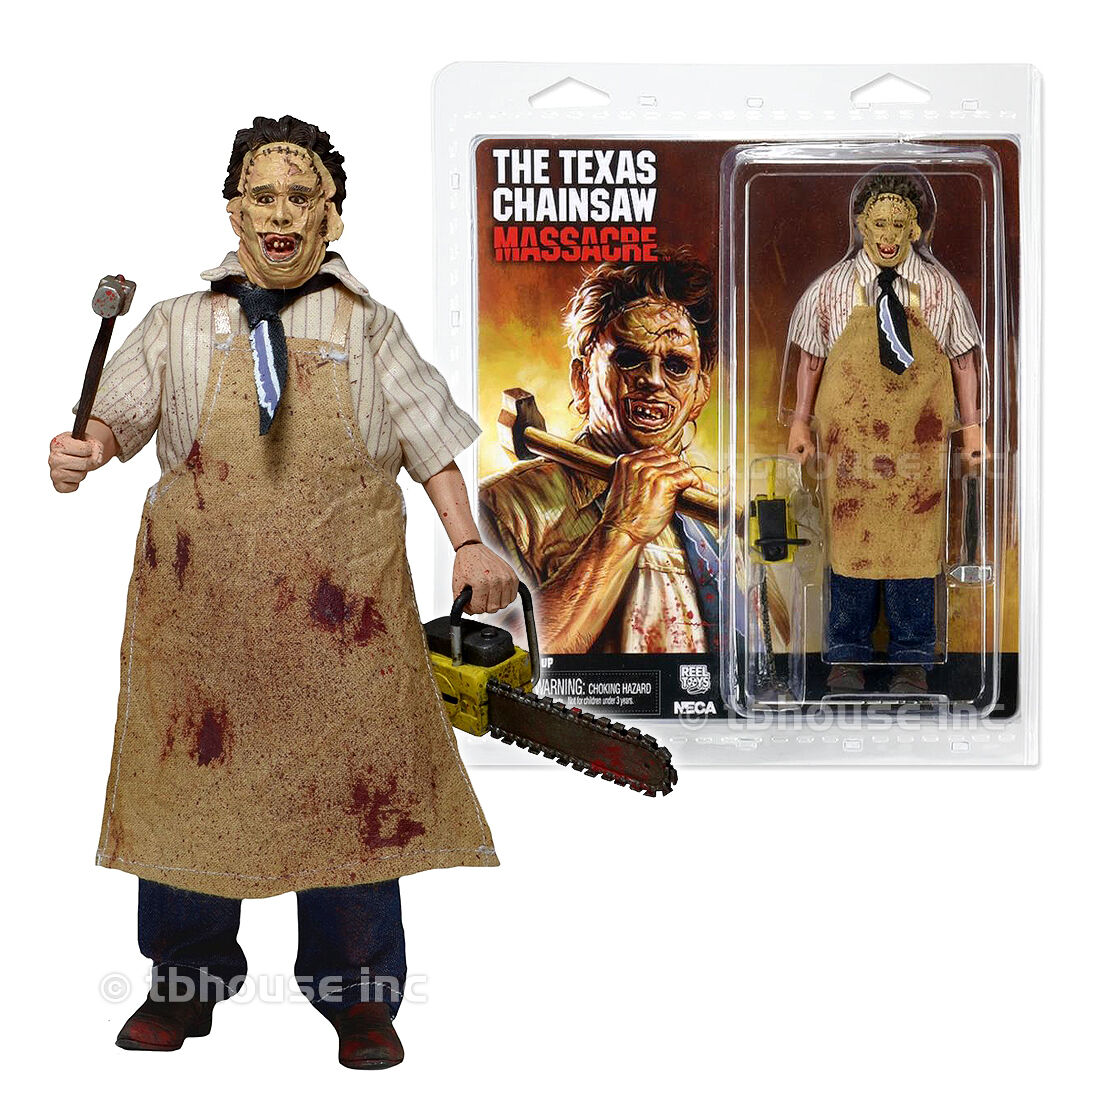 PelleFACE figure RETRO-STYLE CLOTHED neca THE TEXAS CHAINSAW MASSACRE series